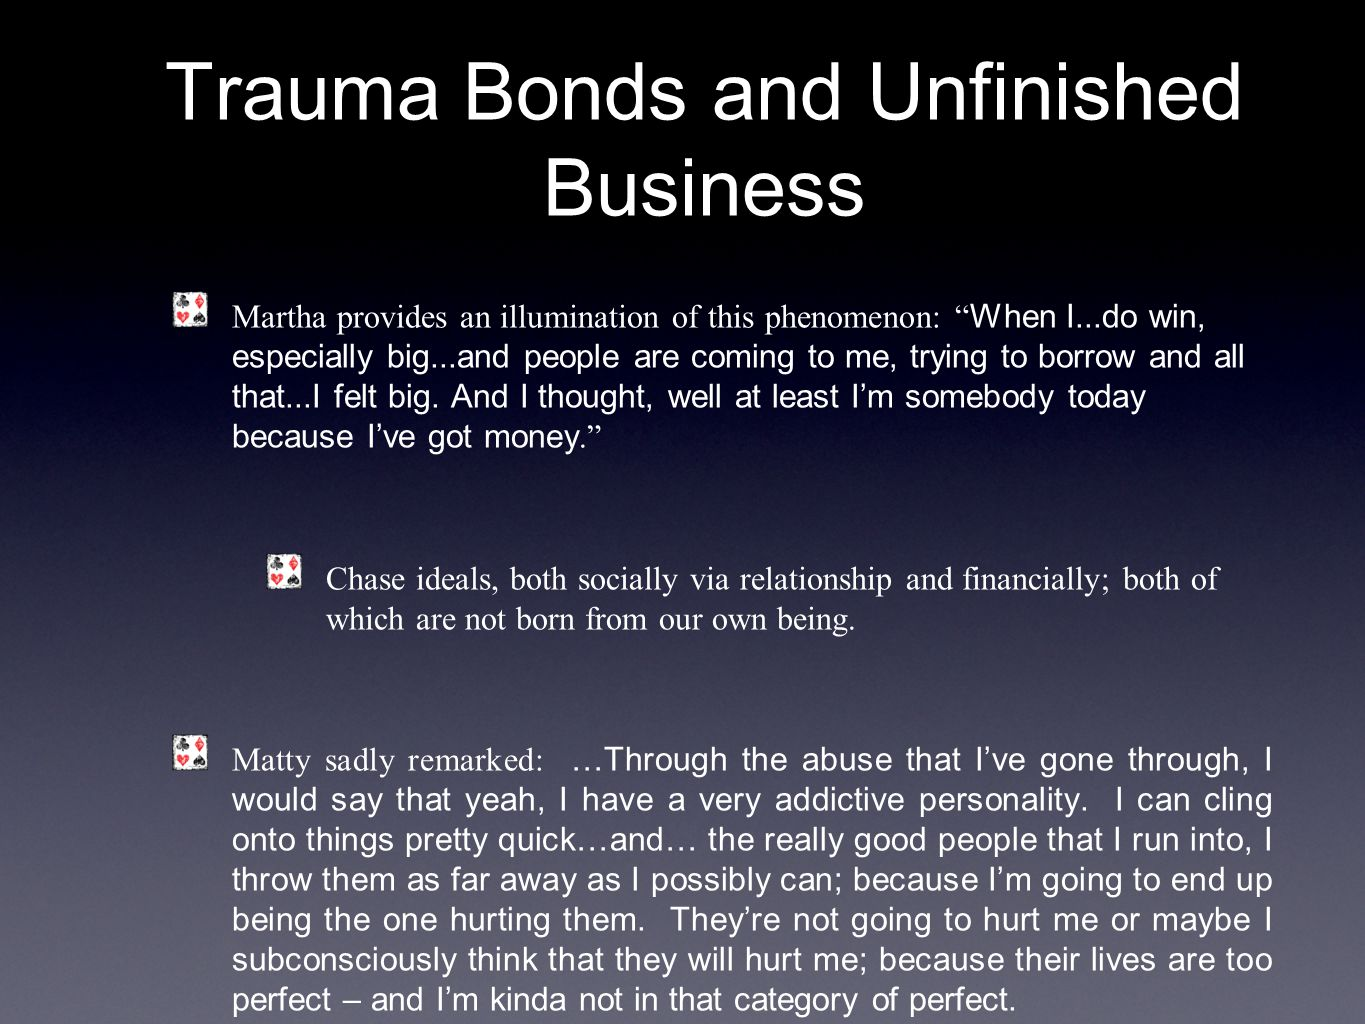 Trauma Bonds and Unfinished Business Martha provides an illumination of this phenomenon: When I...do win, especially big...and people are coming to me, trying to borrow and all that...I felt big.